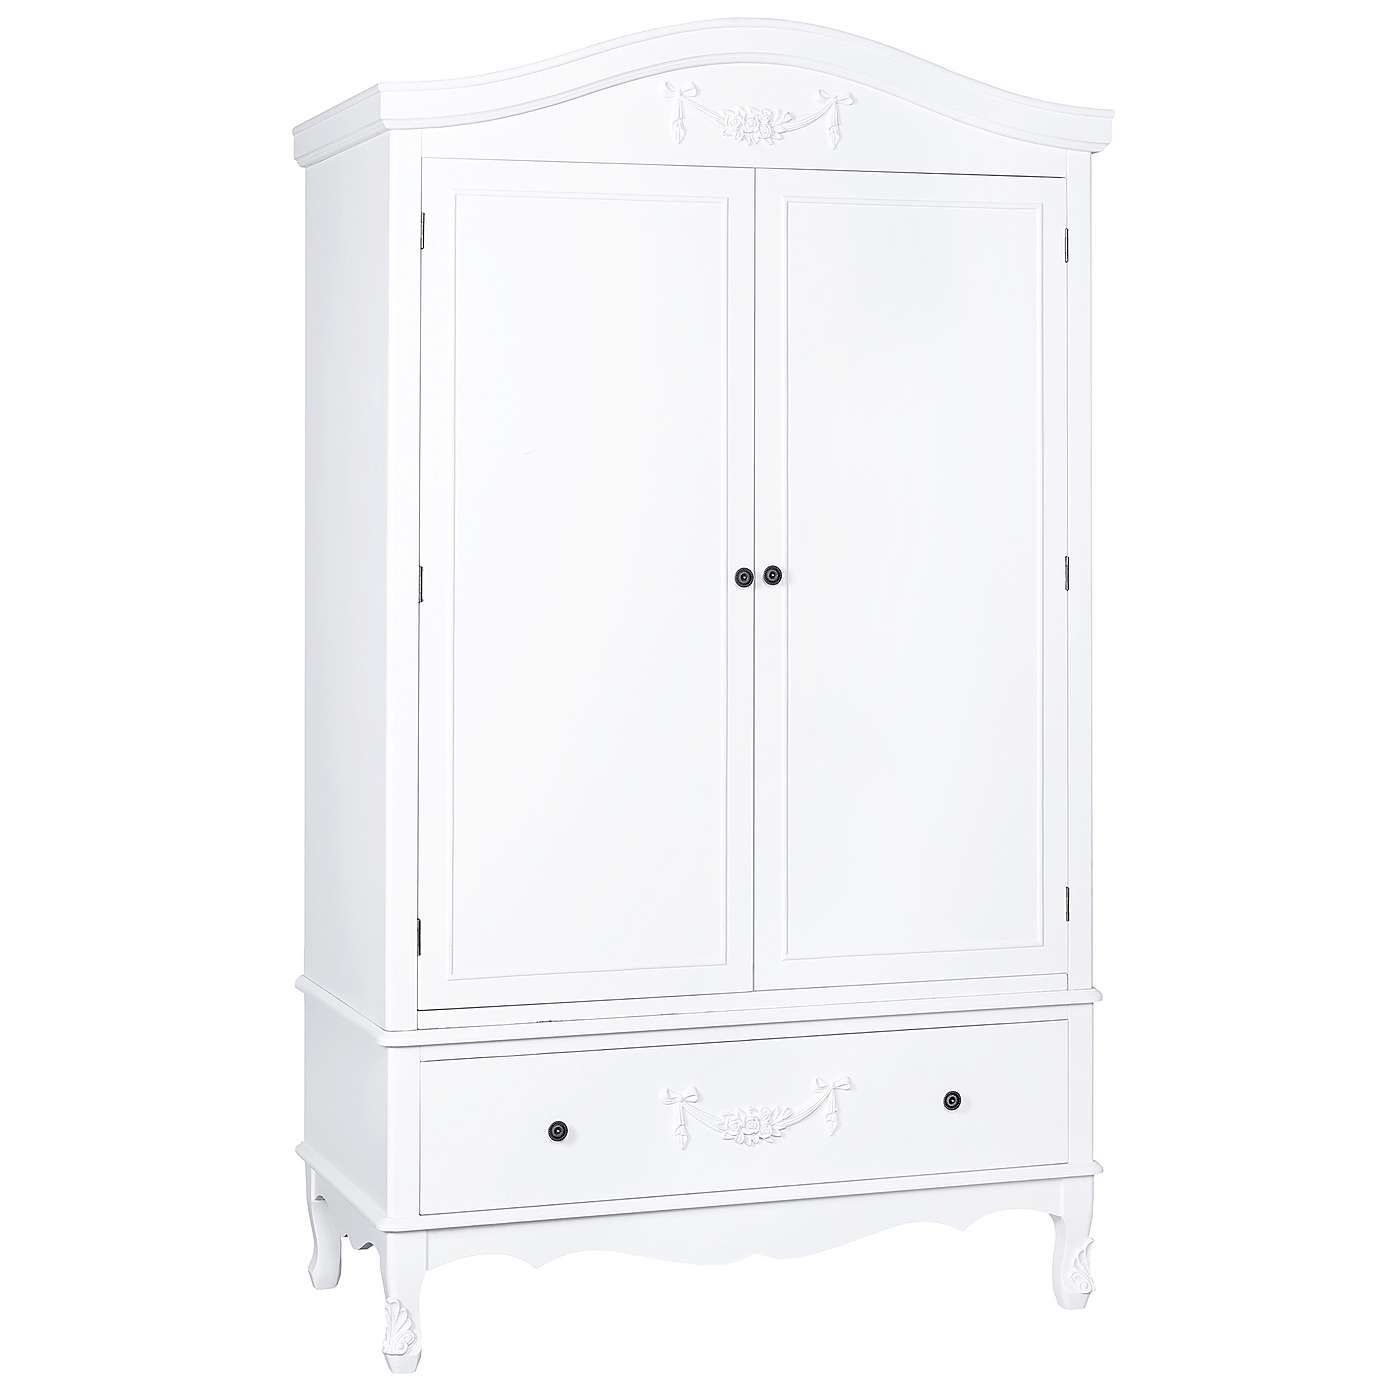 Toulouse White Double Wardrobe White Double Wardrobe Double  # Muebles Toulouse